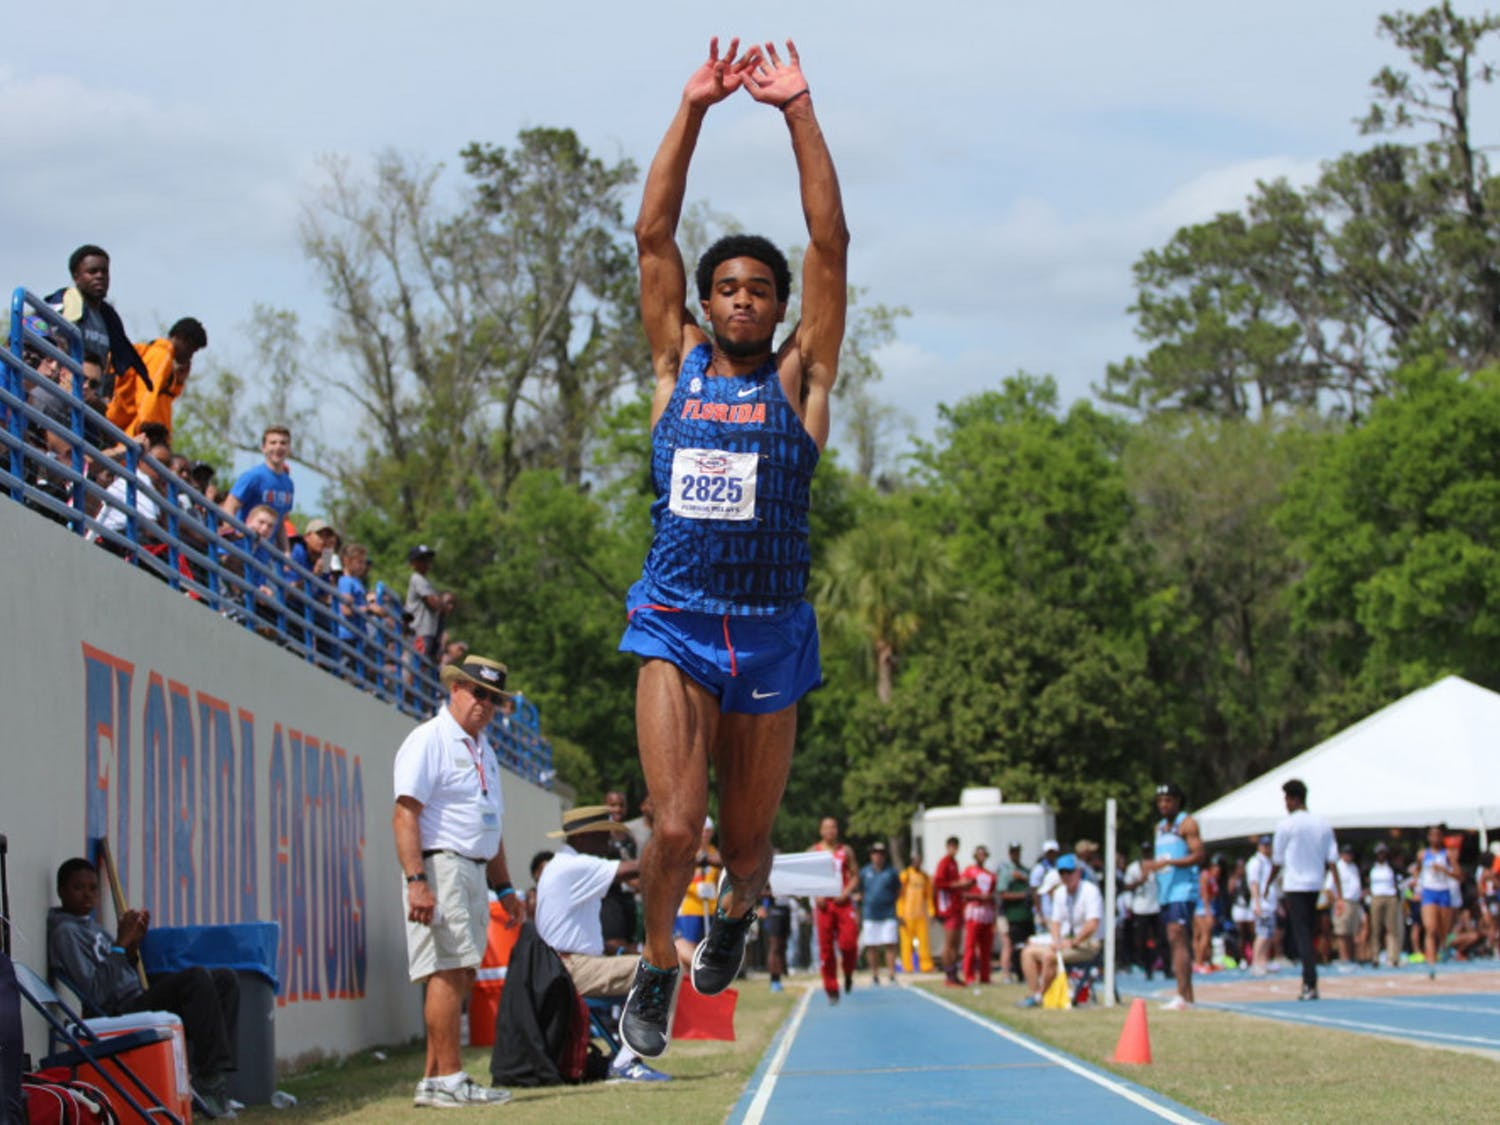 Senior KeAndre Bates notched the second-longest triple jump in the nation Saturday at the Pepsi Florida Relays.